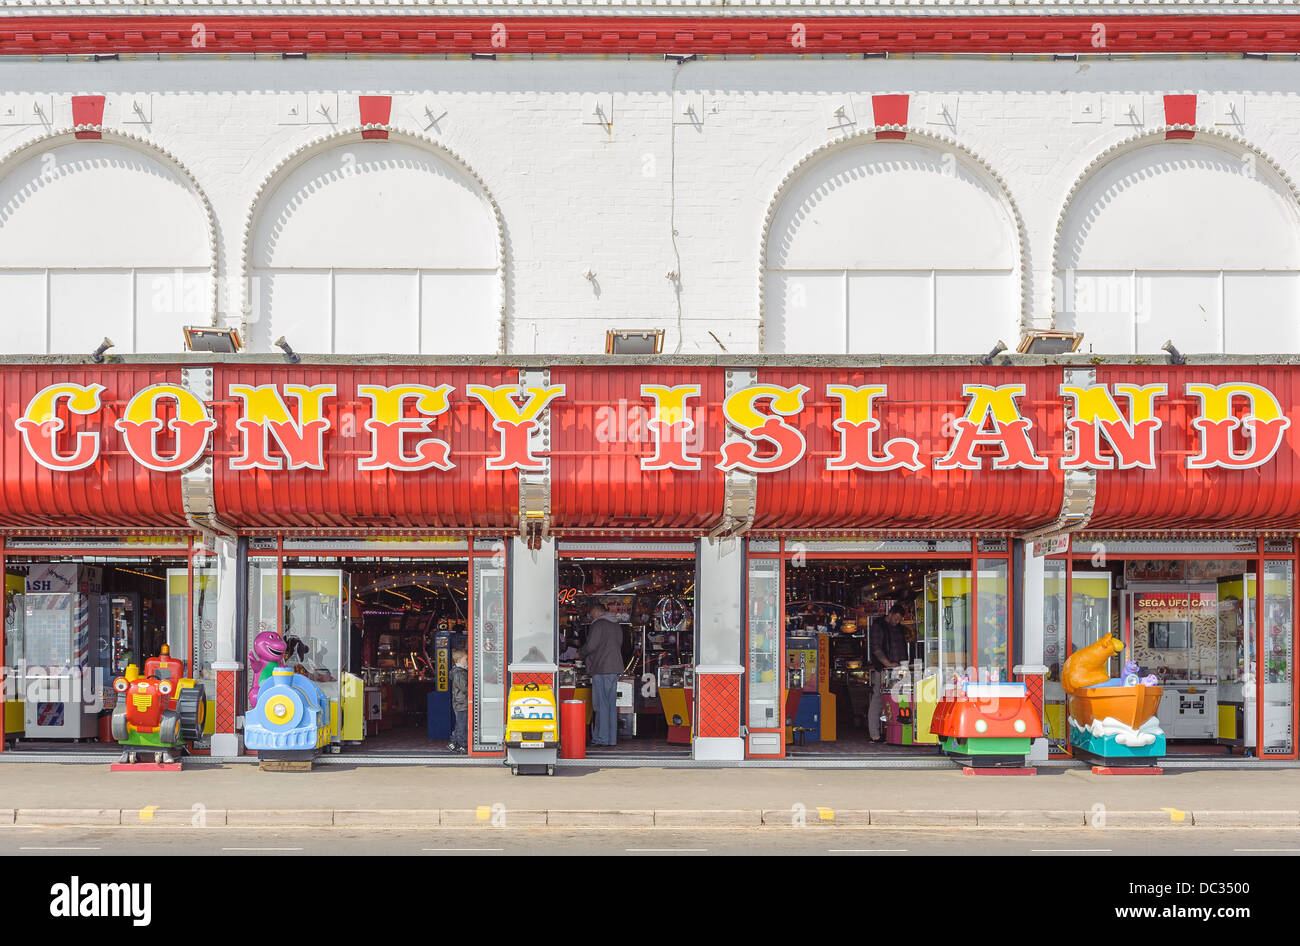 Coney Island News